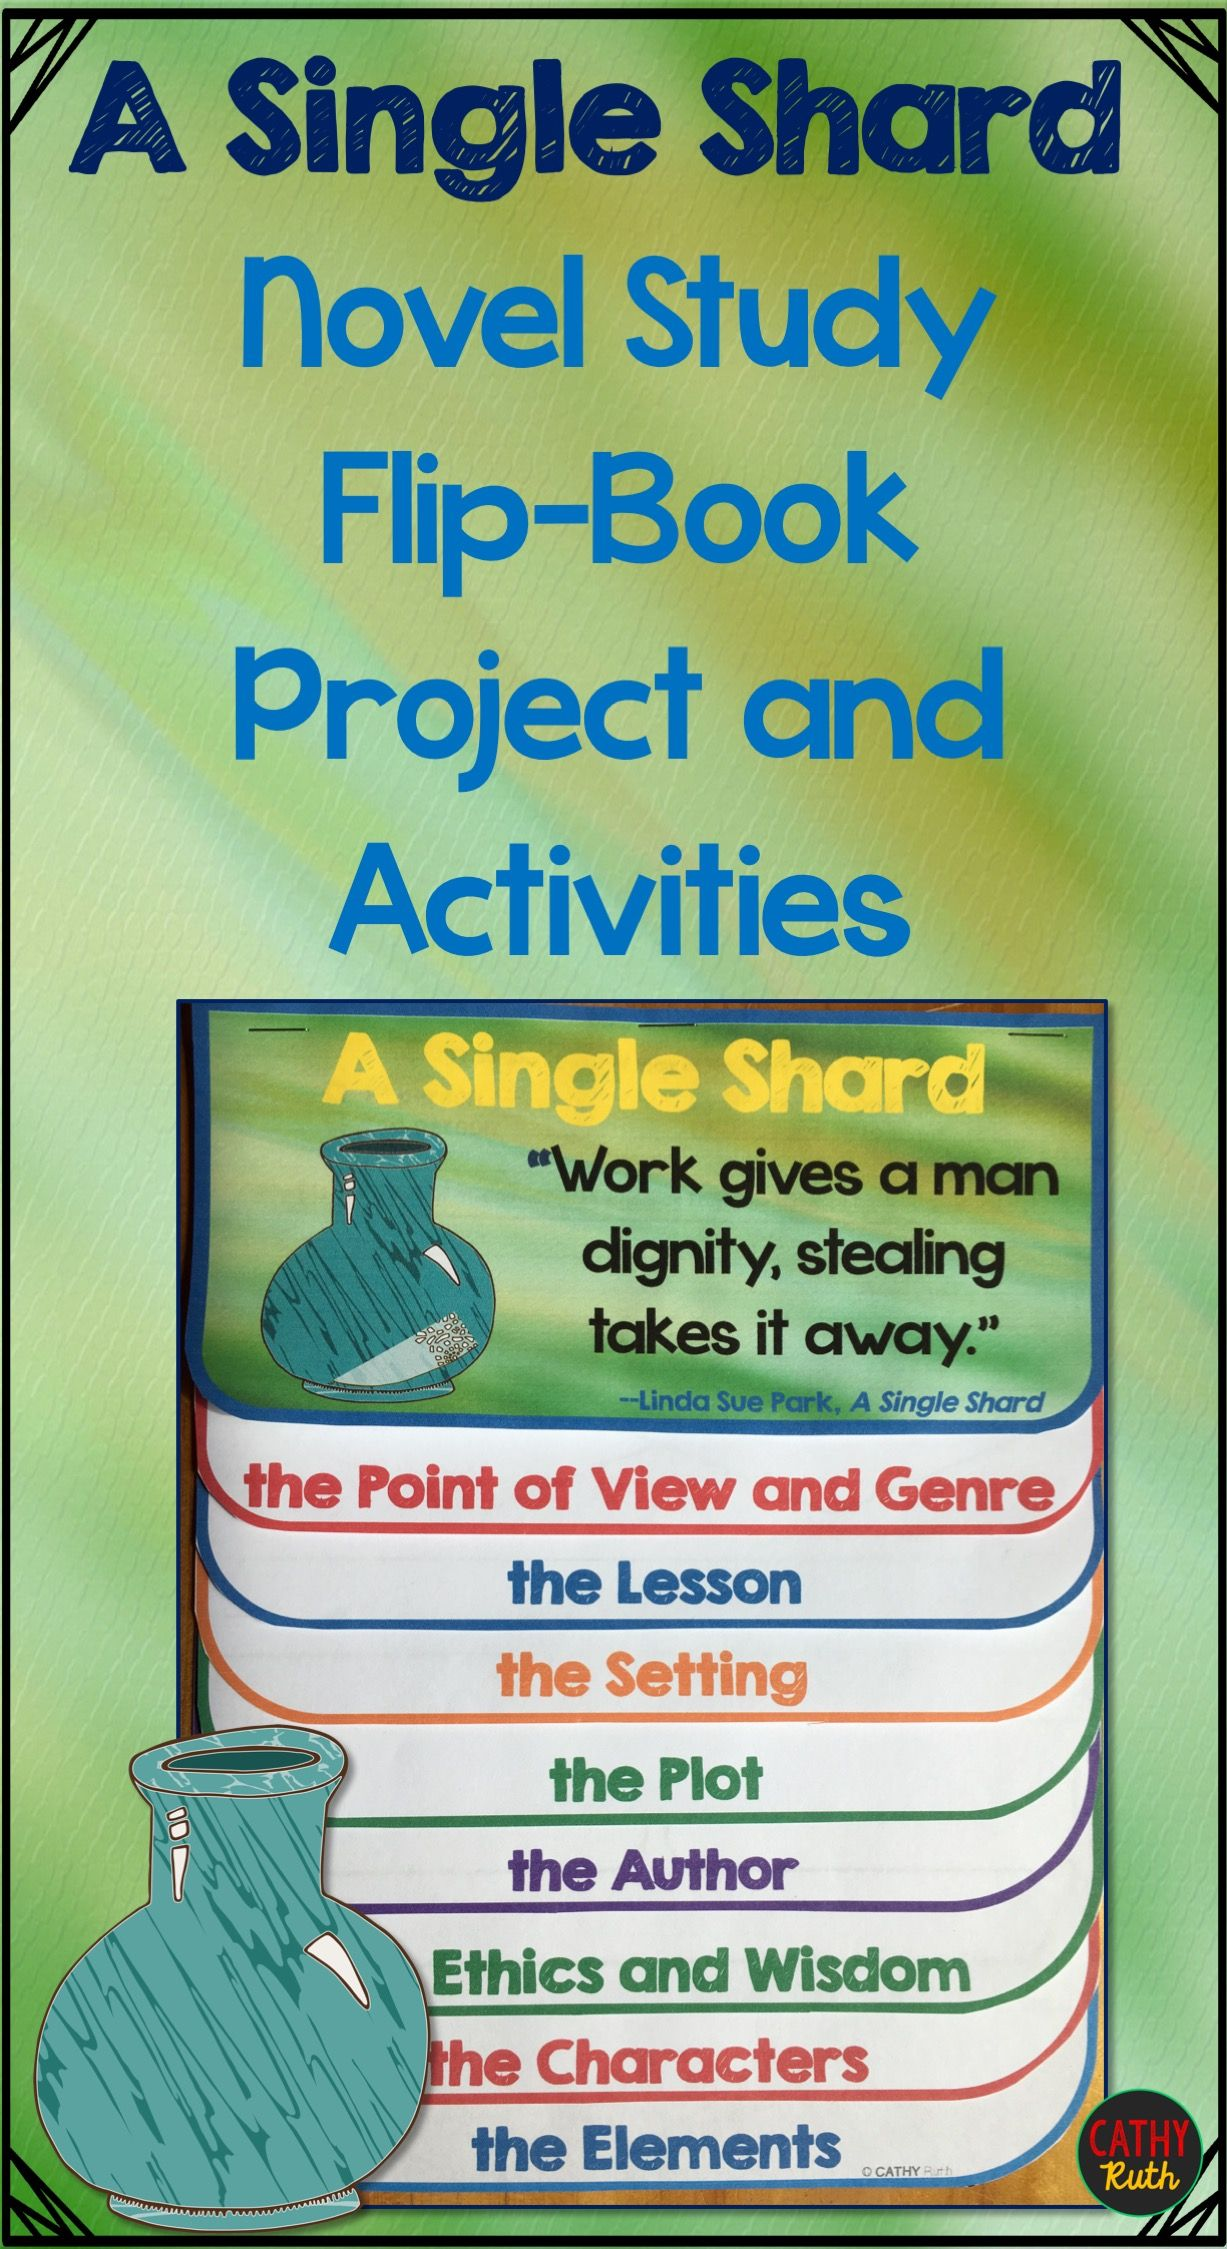 A Single Shard Flipbook Project Writing Prompts And